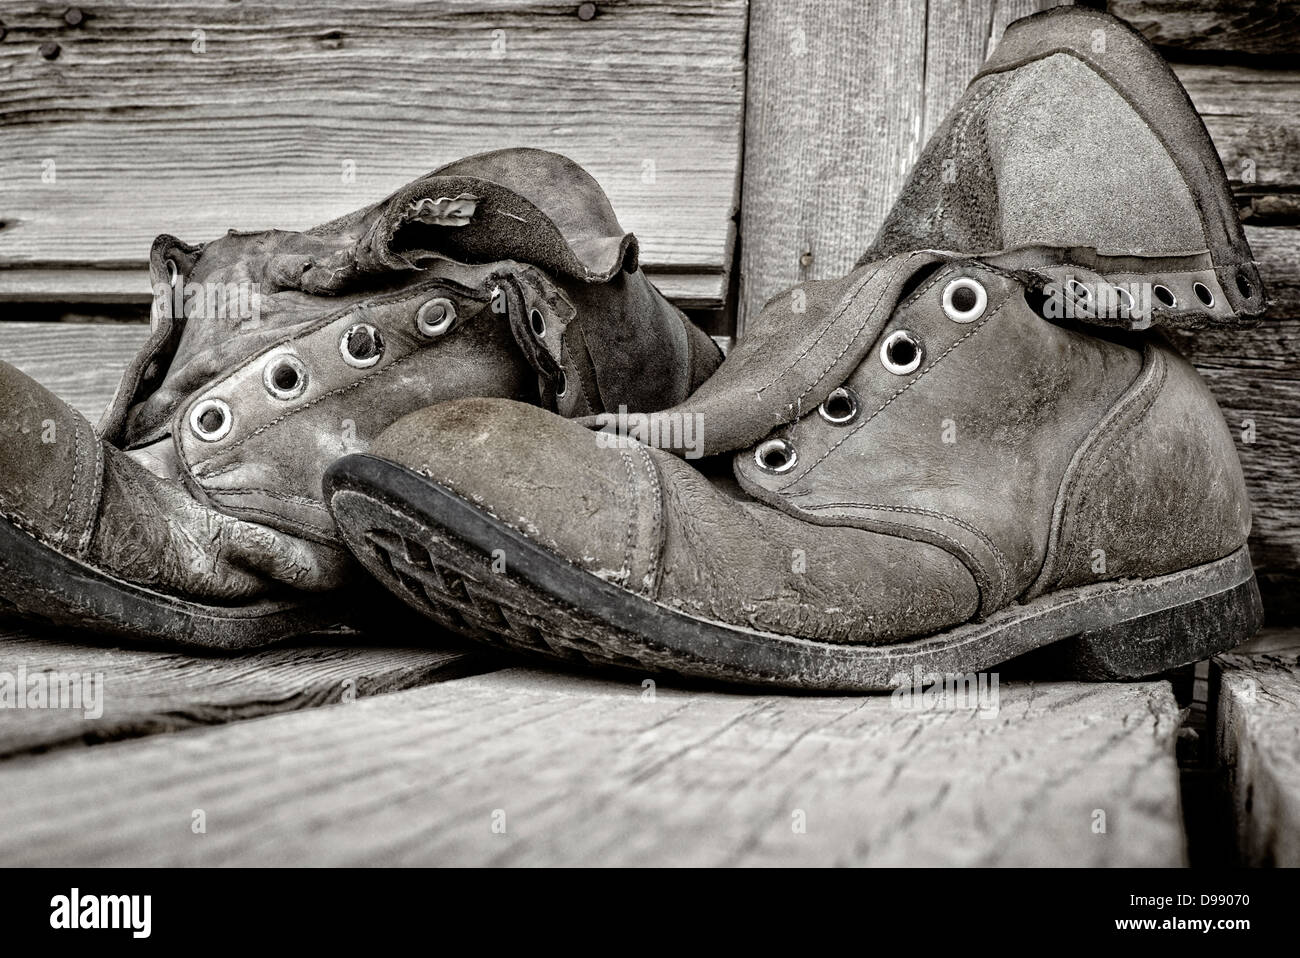 Black & white photo of old weathered hiking boots on wooden porch of Chitina Emporium, remote town of Chitina, Alaska, Stock Photo